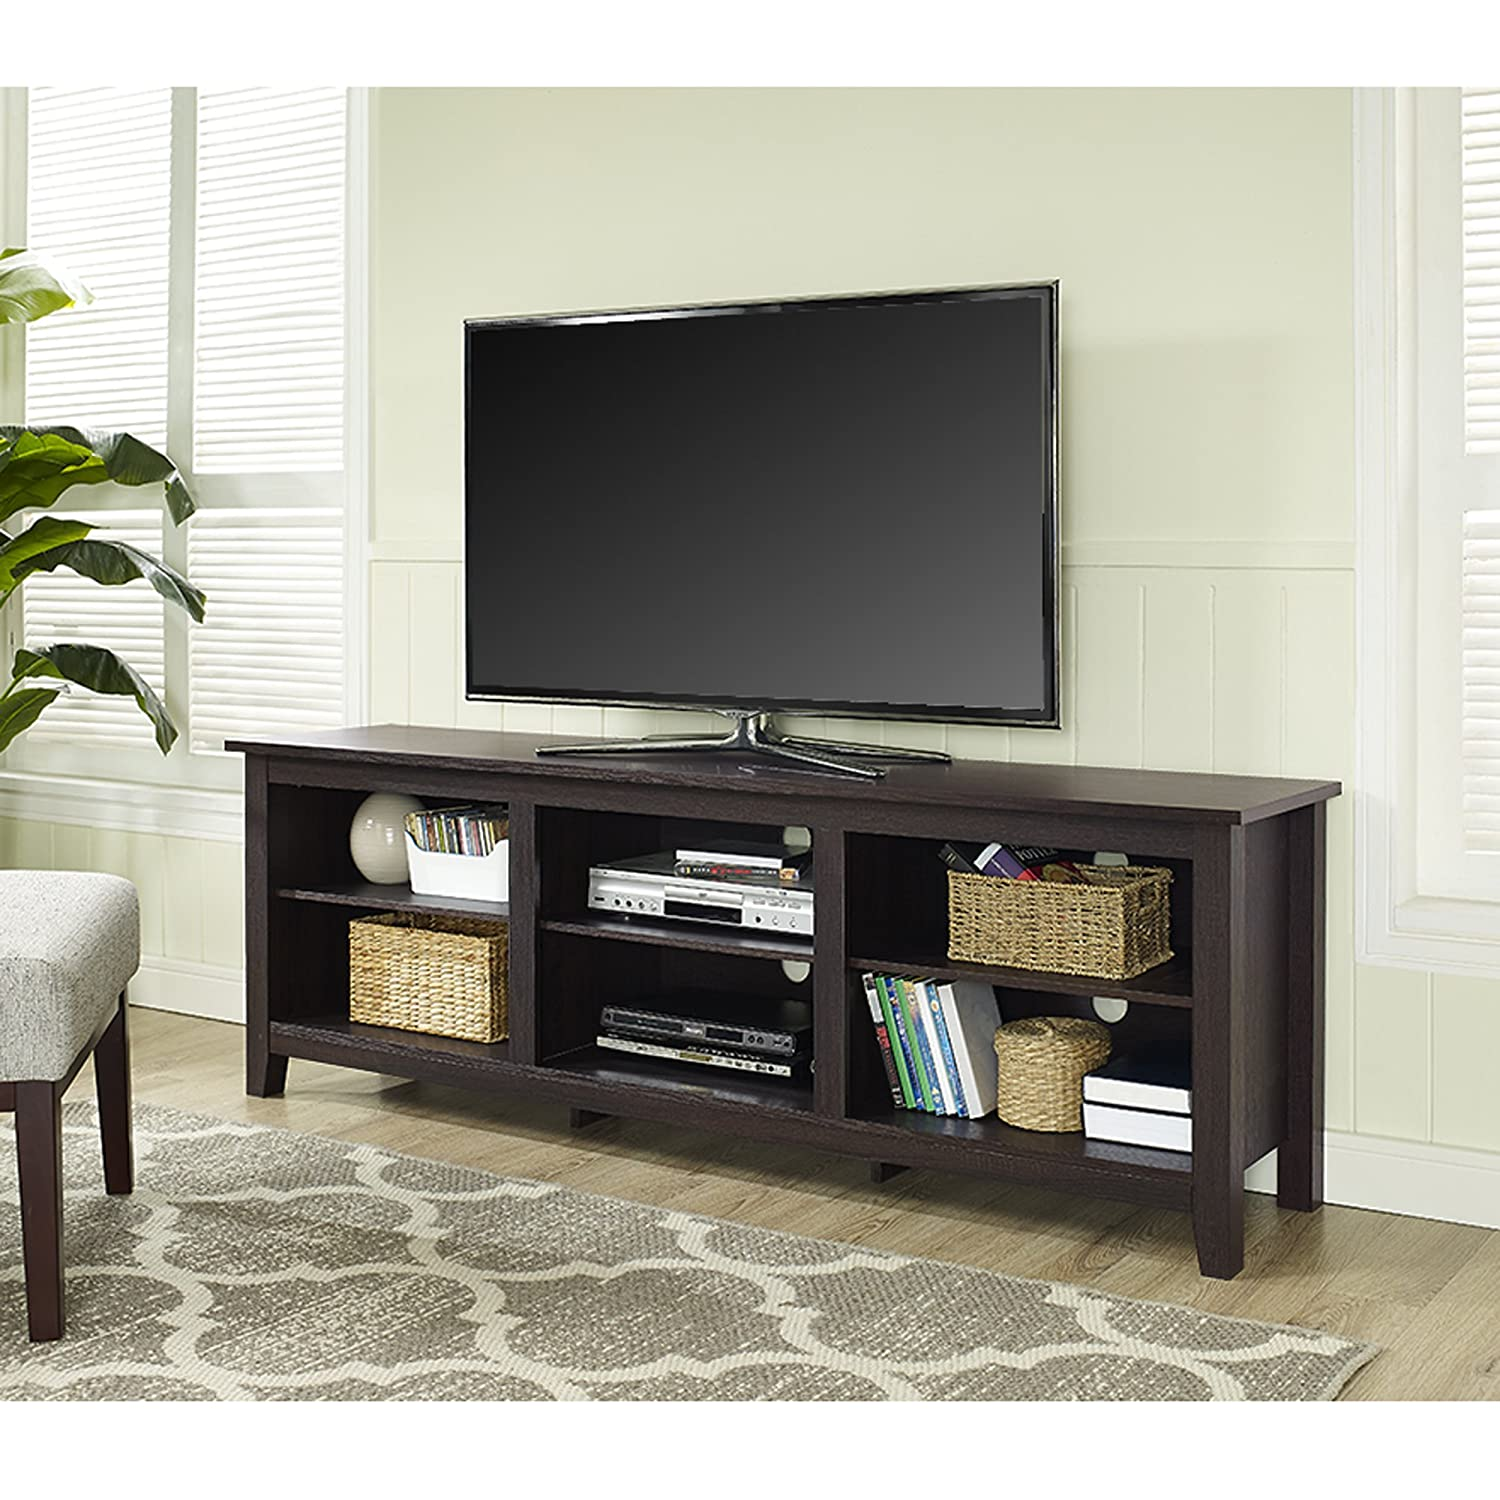 amazoncom we furniture  espresso wood tv stand console  - amazoncom we furniture  espresso wood tv stand console kitchen dining